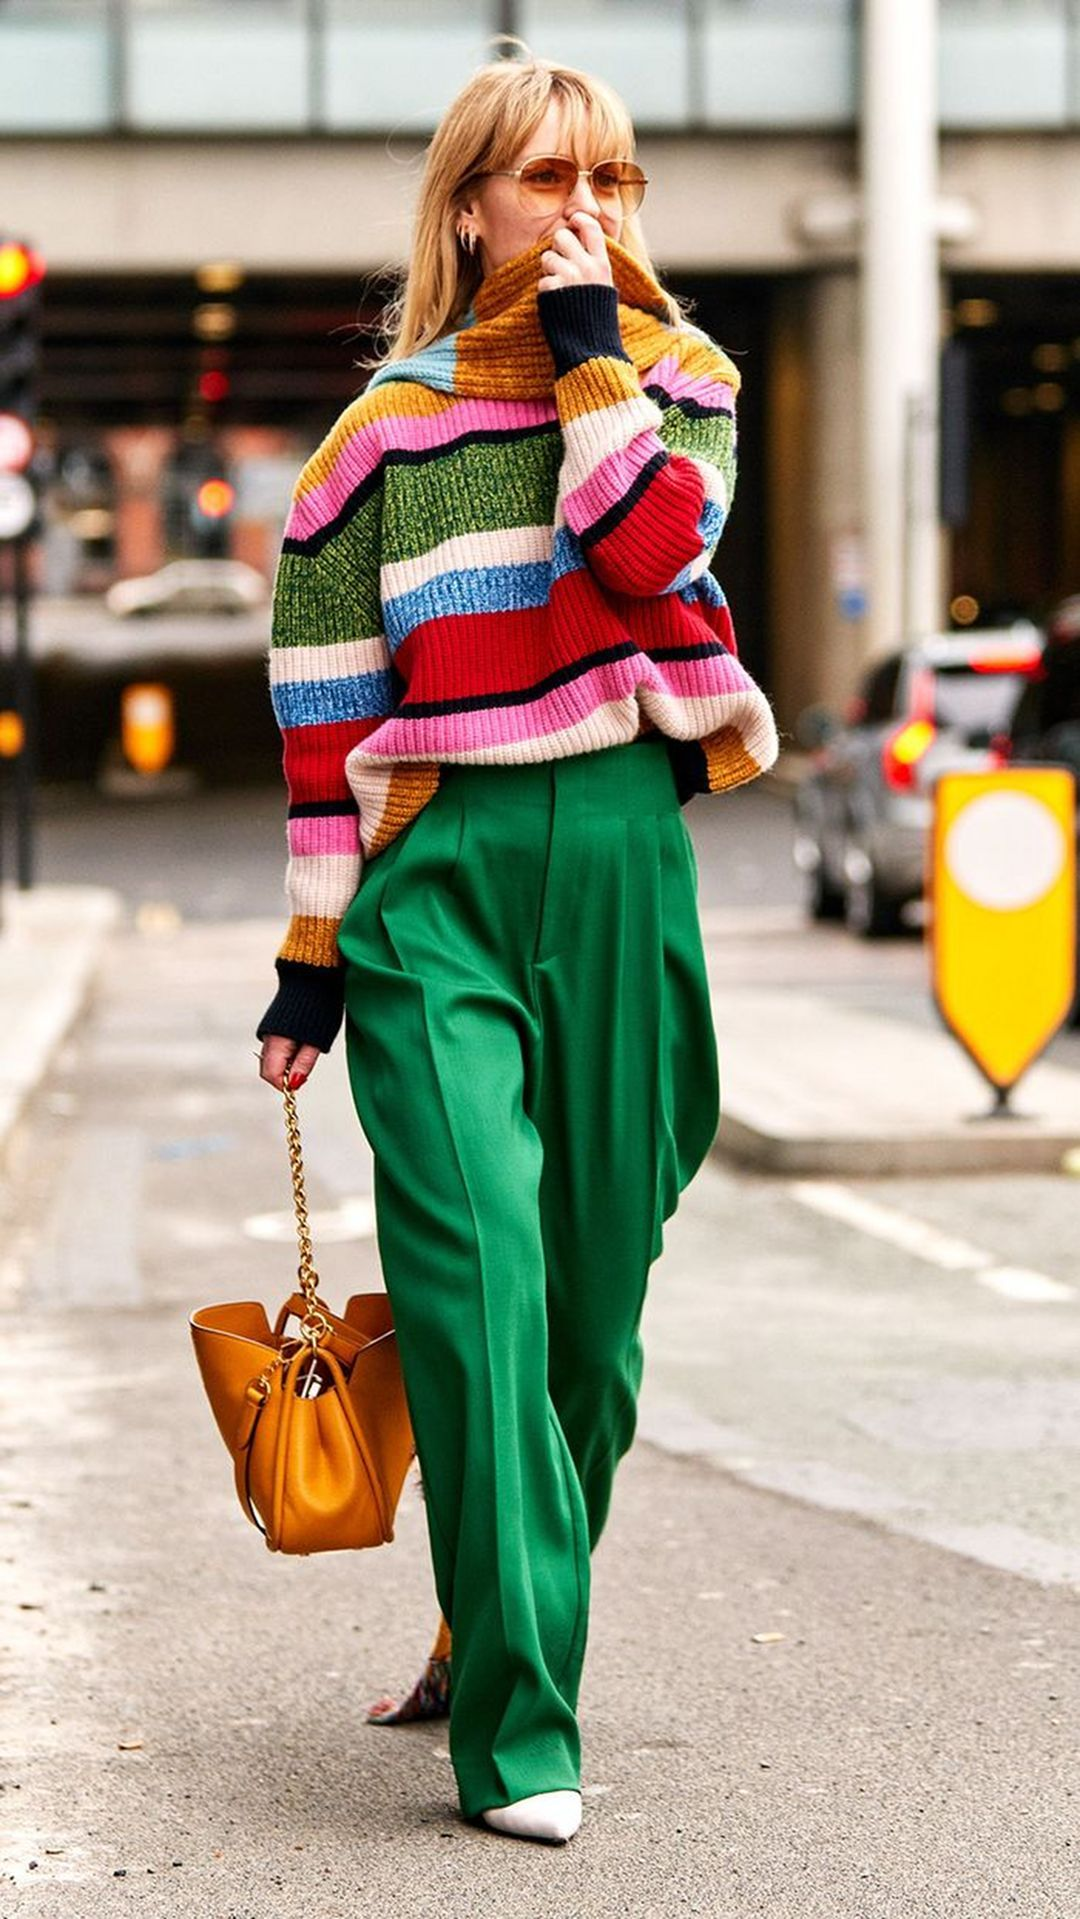 4 Beautiful Colorful Outfit Ideas To Express Yourself To Look